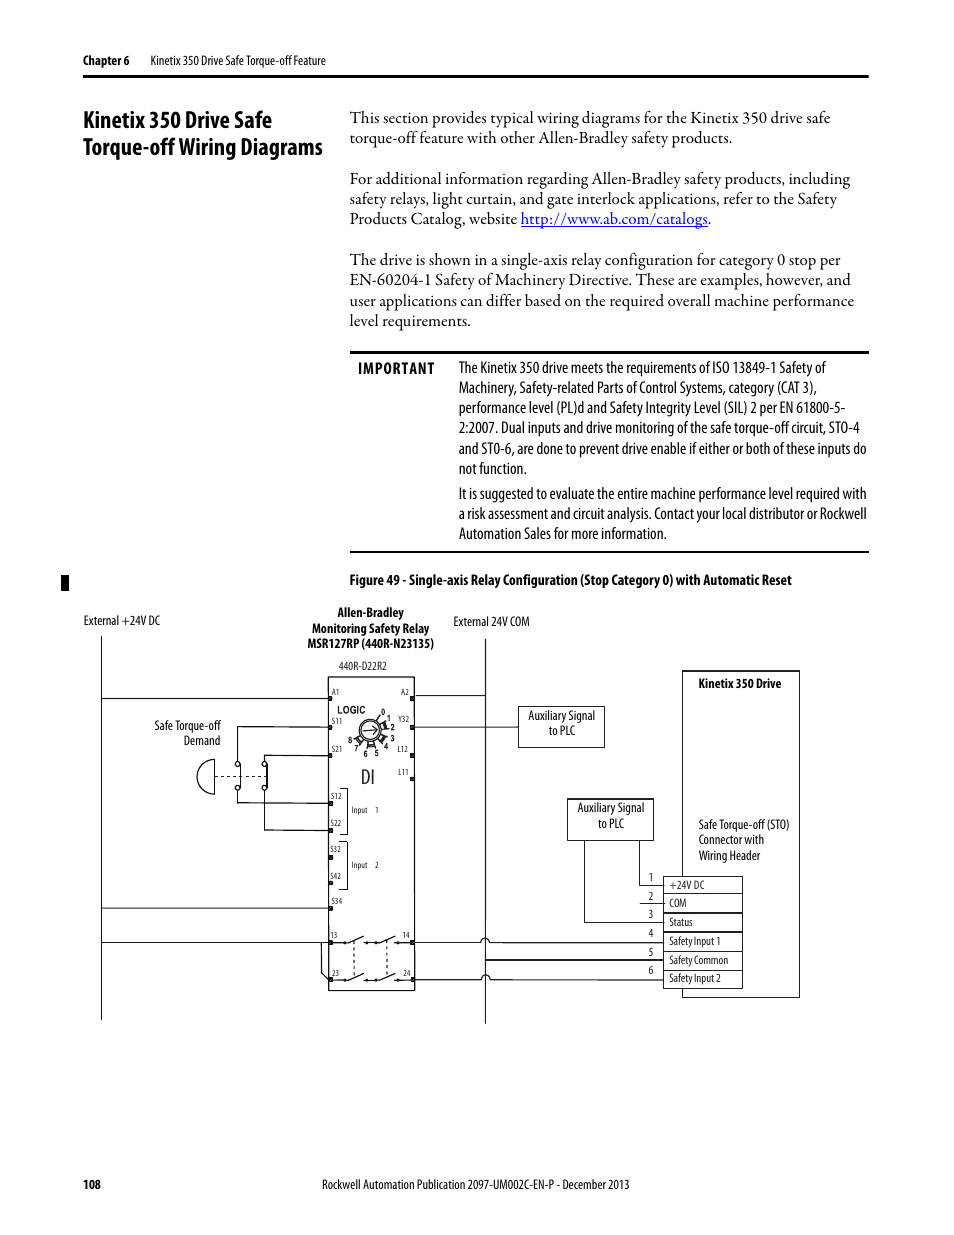 rockwell automation 2097 vxxx kinetix 350 single axis ethernet_ip servo drive user manual page108?resize\\\\\\\=665%2C861 axis lighting wiring diagrams wiring diagrams Basic Electrical Wiring Diagrams at readyjetset.co